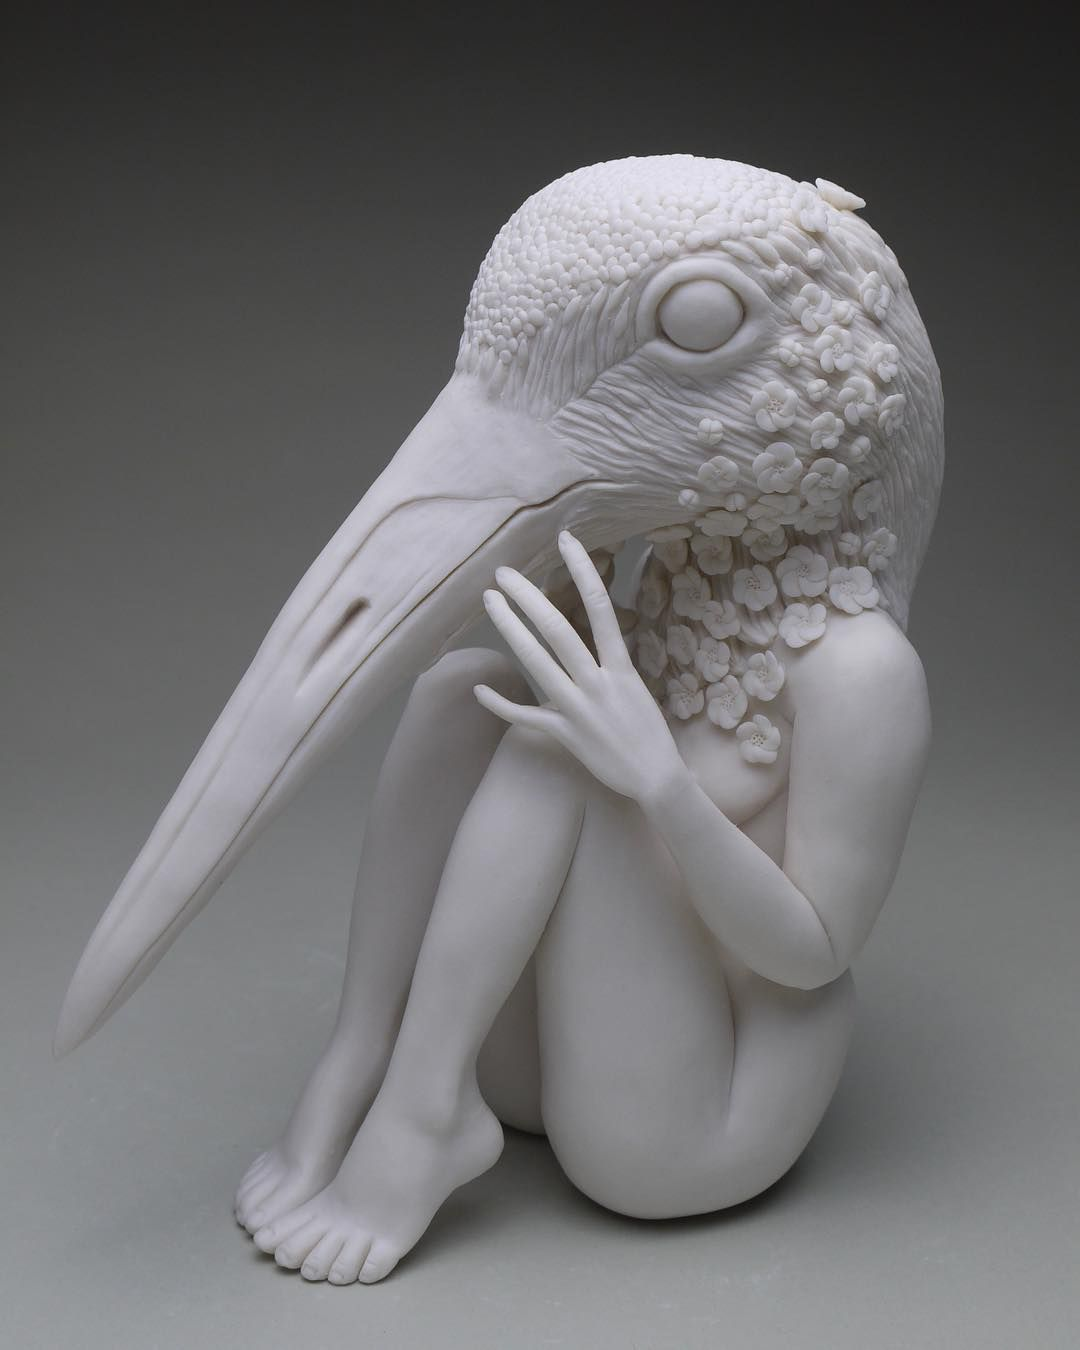 Crystal Morey On Instagram Creation 7 Of 2018 Whooping Crane The Whooping Crane Has One Of My Fav Ceramic Art Sculpture Weird Photography Ceramic Sculpture